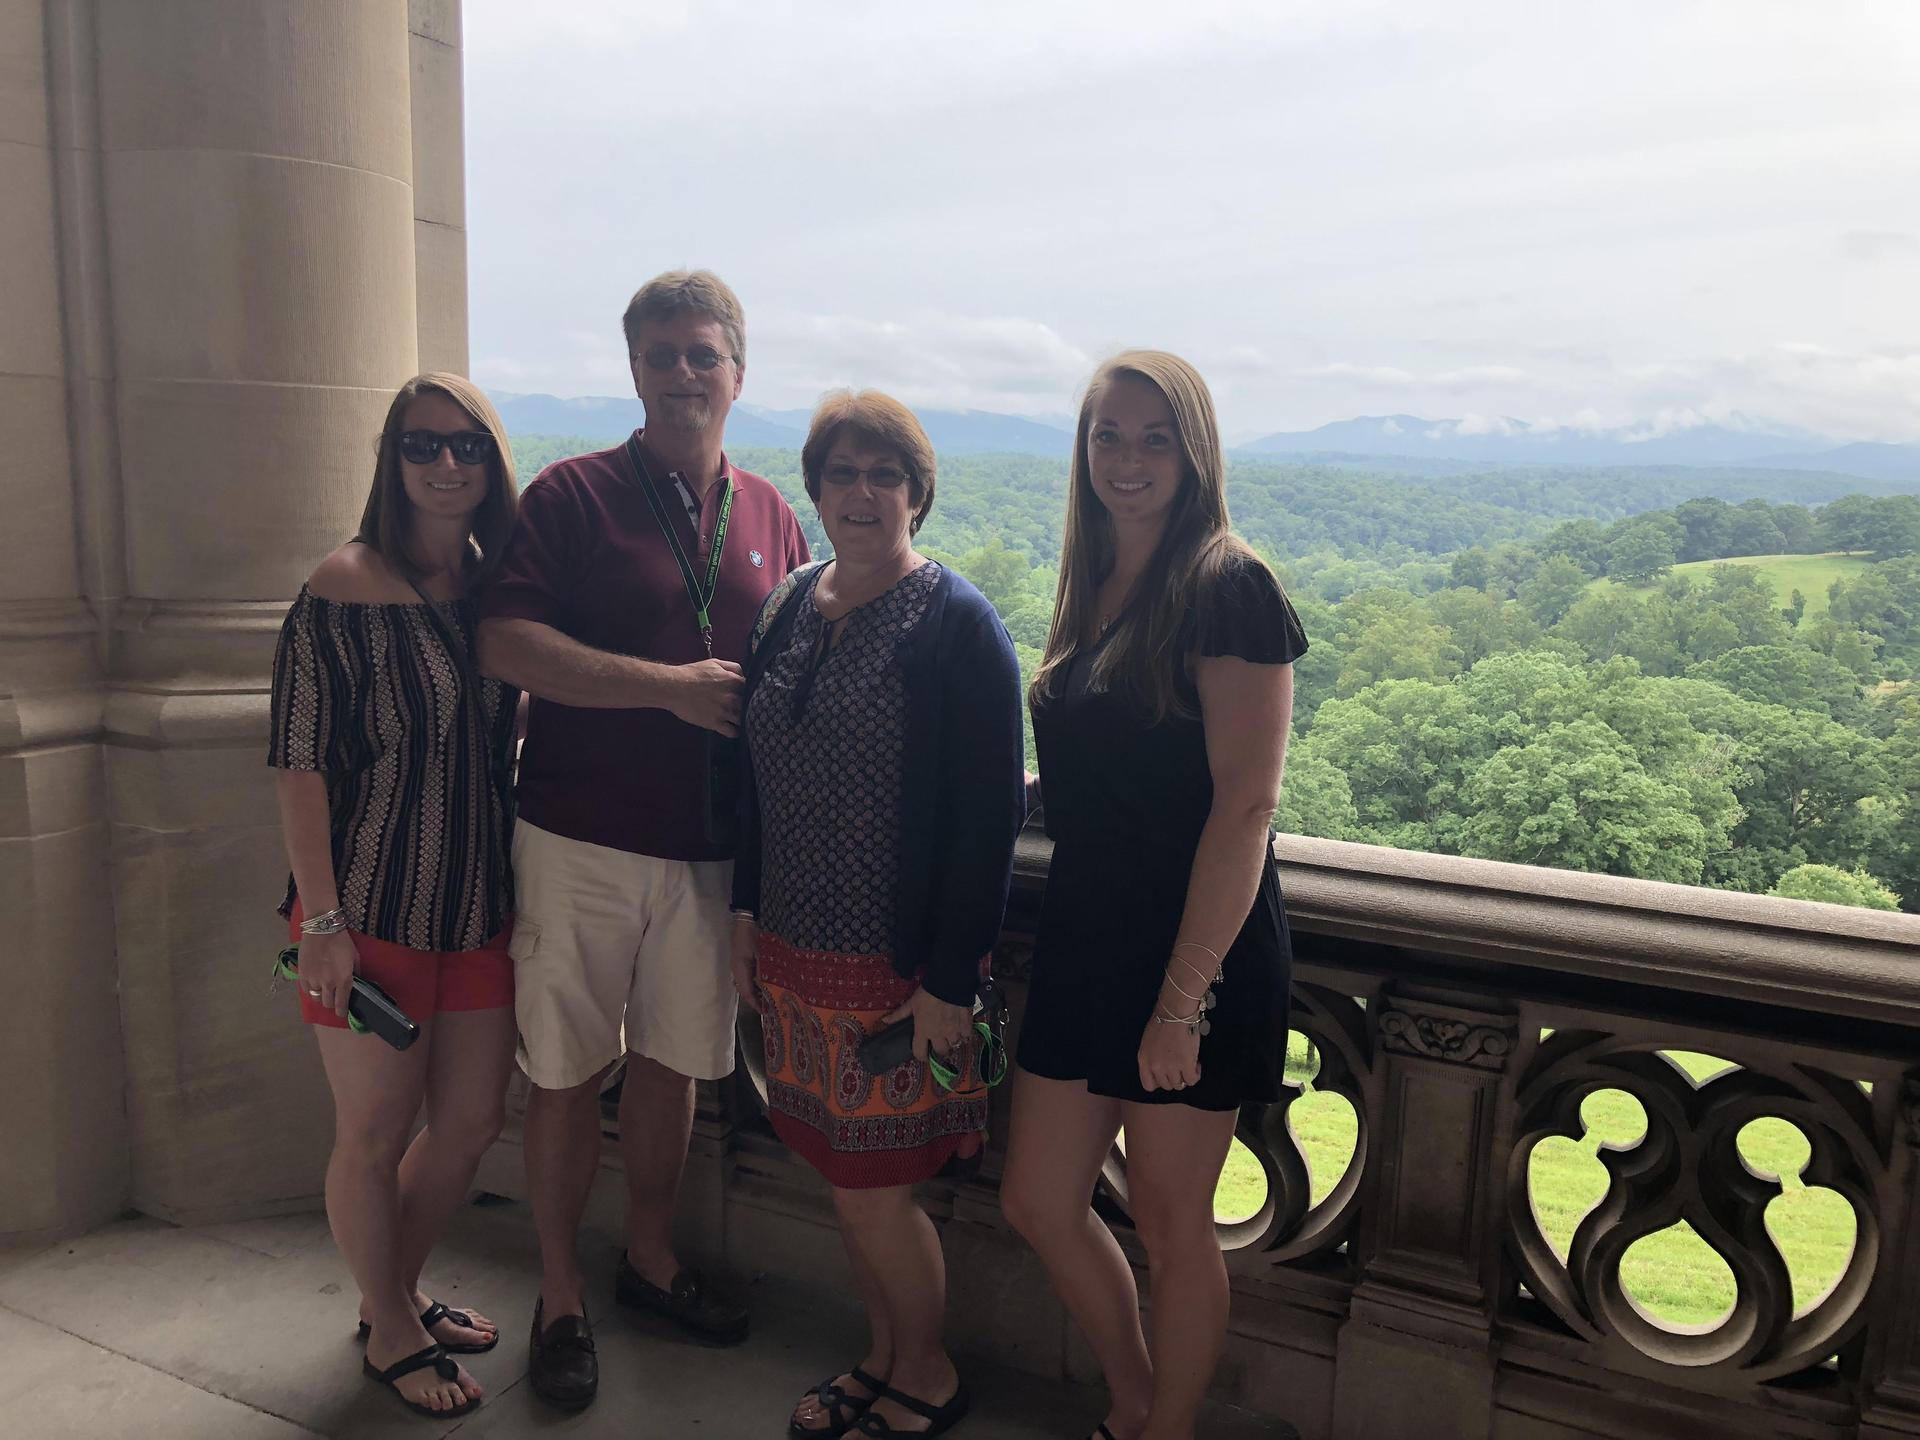 Miss Bentley and her family in Asheville, North Carolina